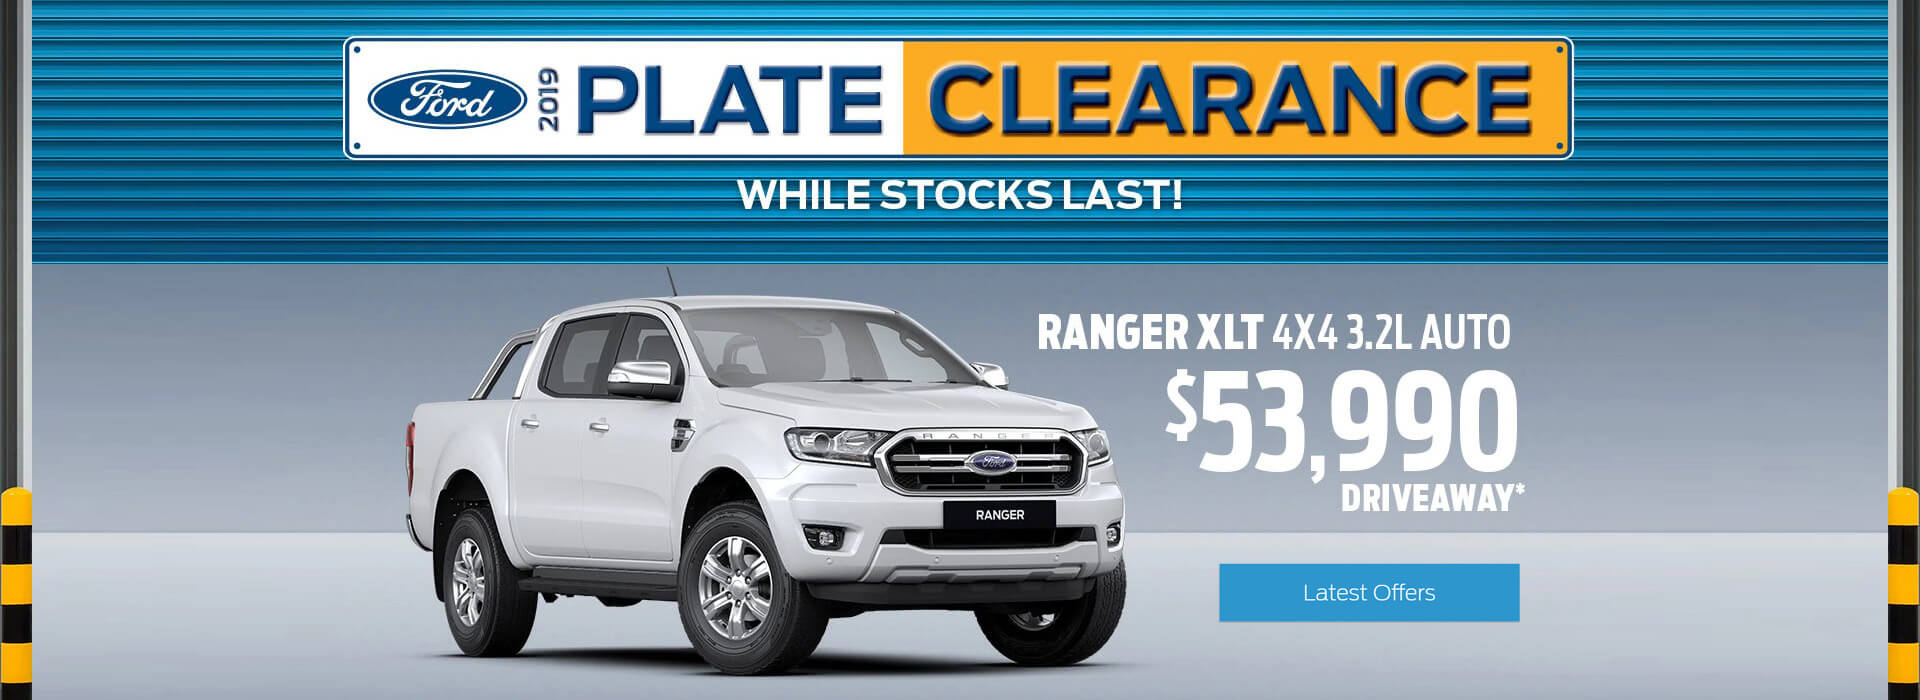 Ford 2019 Plate Clearance. While stock lasts